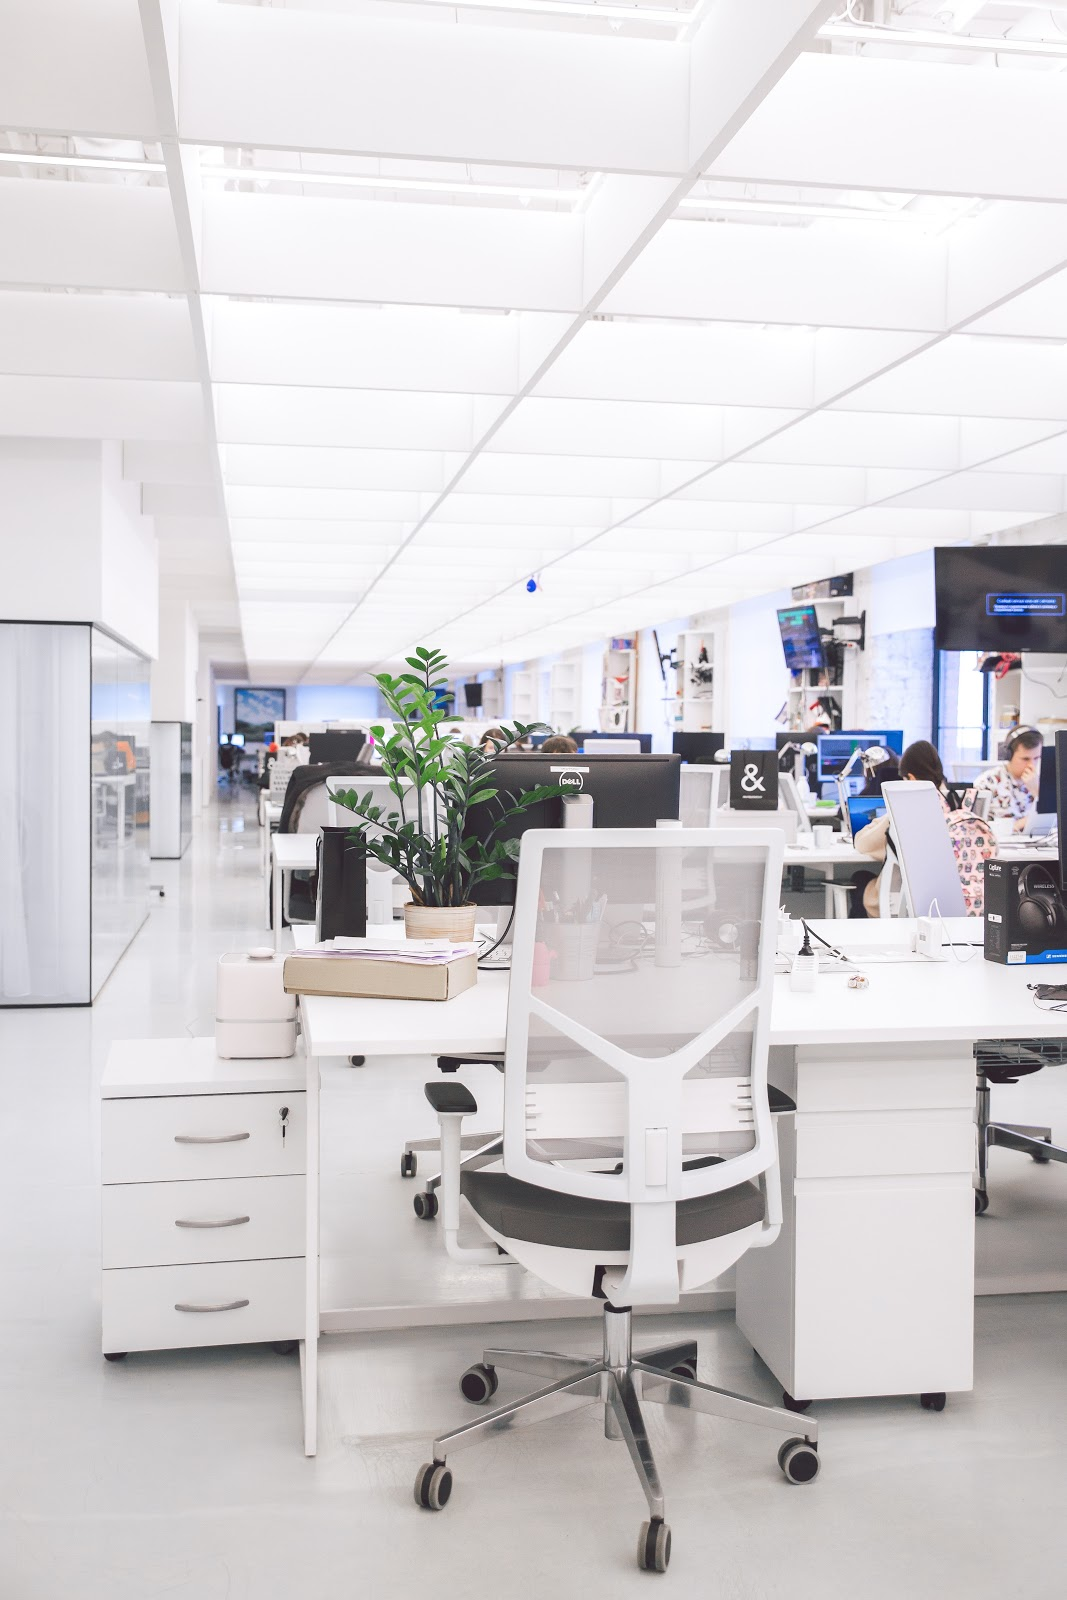 photo-of-building-white interior-3778622/brighten up your office space